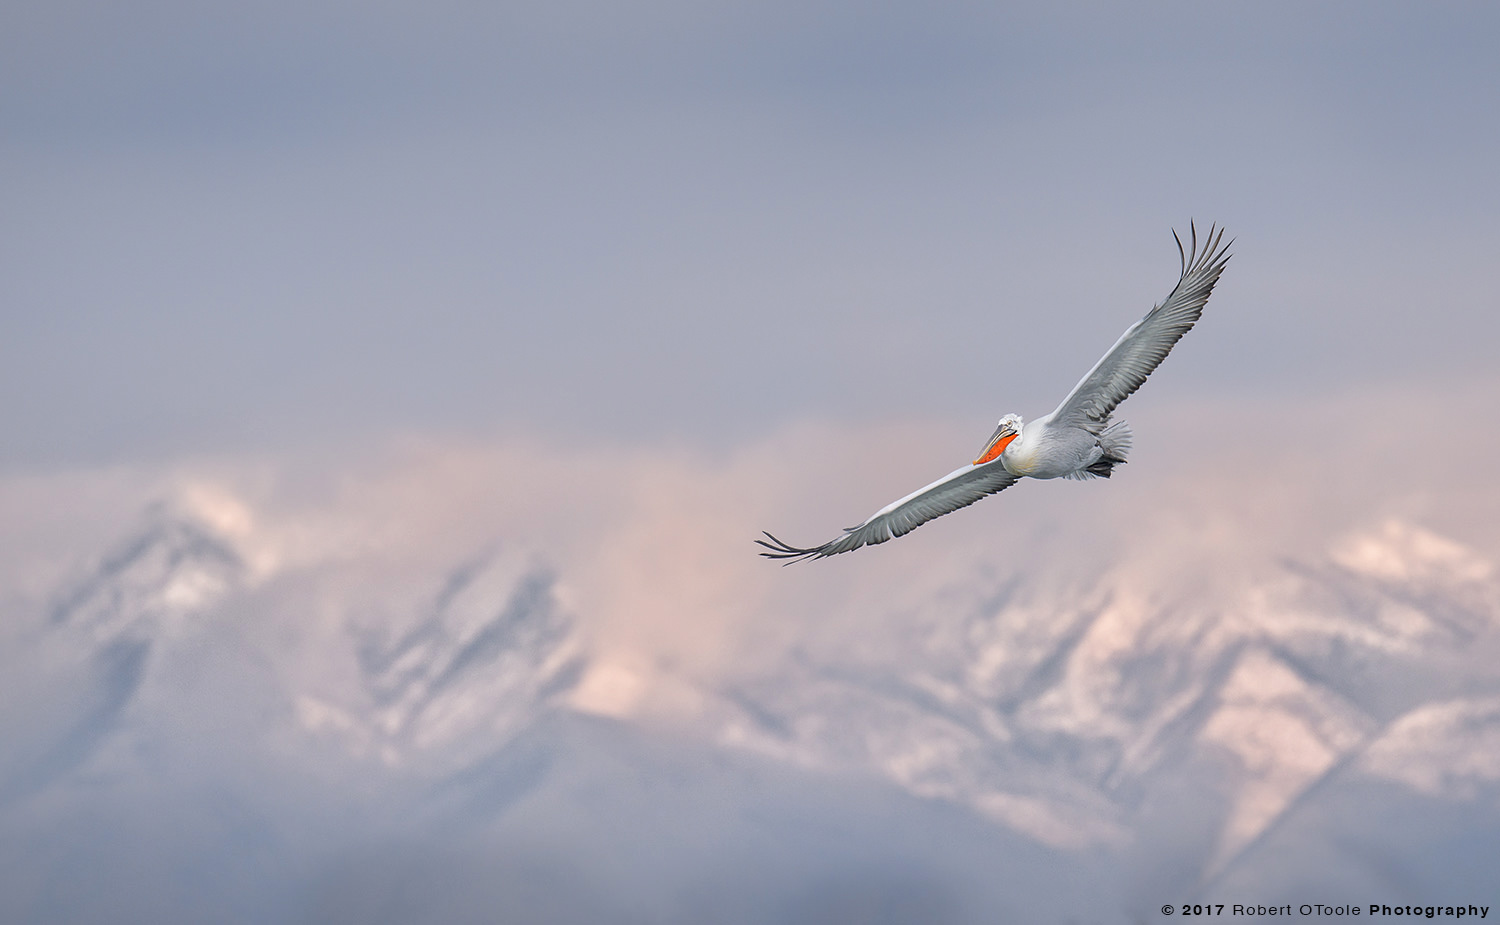 Dalmatian Pelican Flying against Mountains